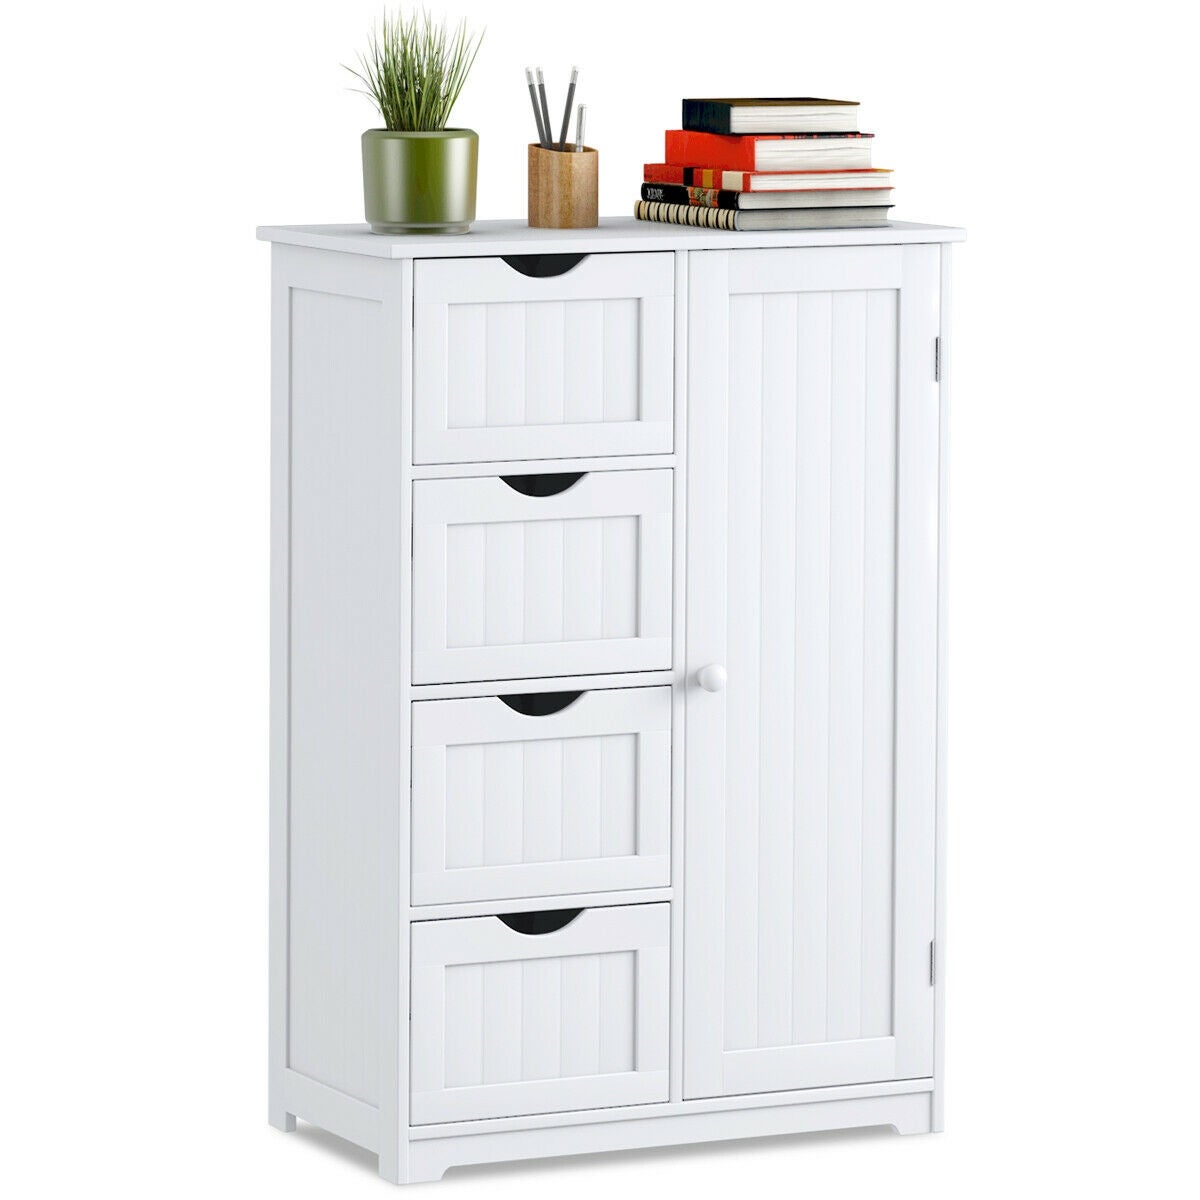 Costway Wooden 4 Drawer Bathroom Cabinet Storage Cupboard 2 Shelves Free Standing White inside sizing 1200 X 1200